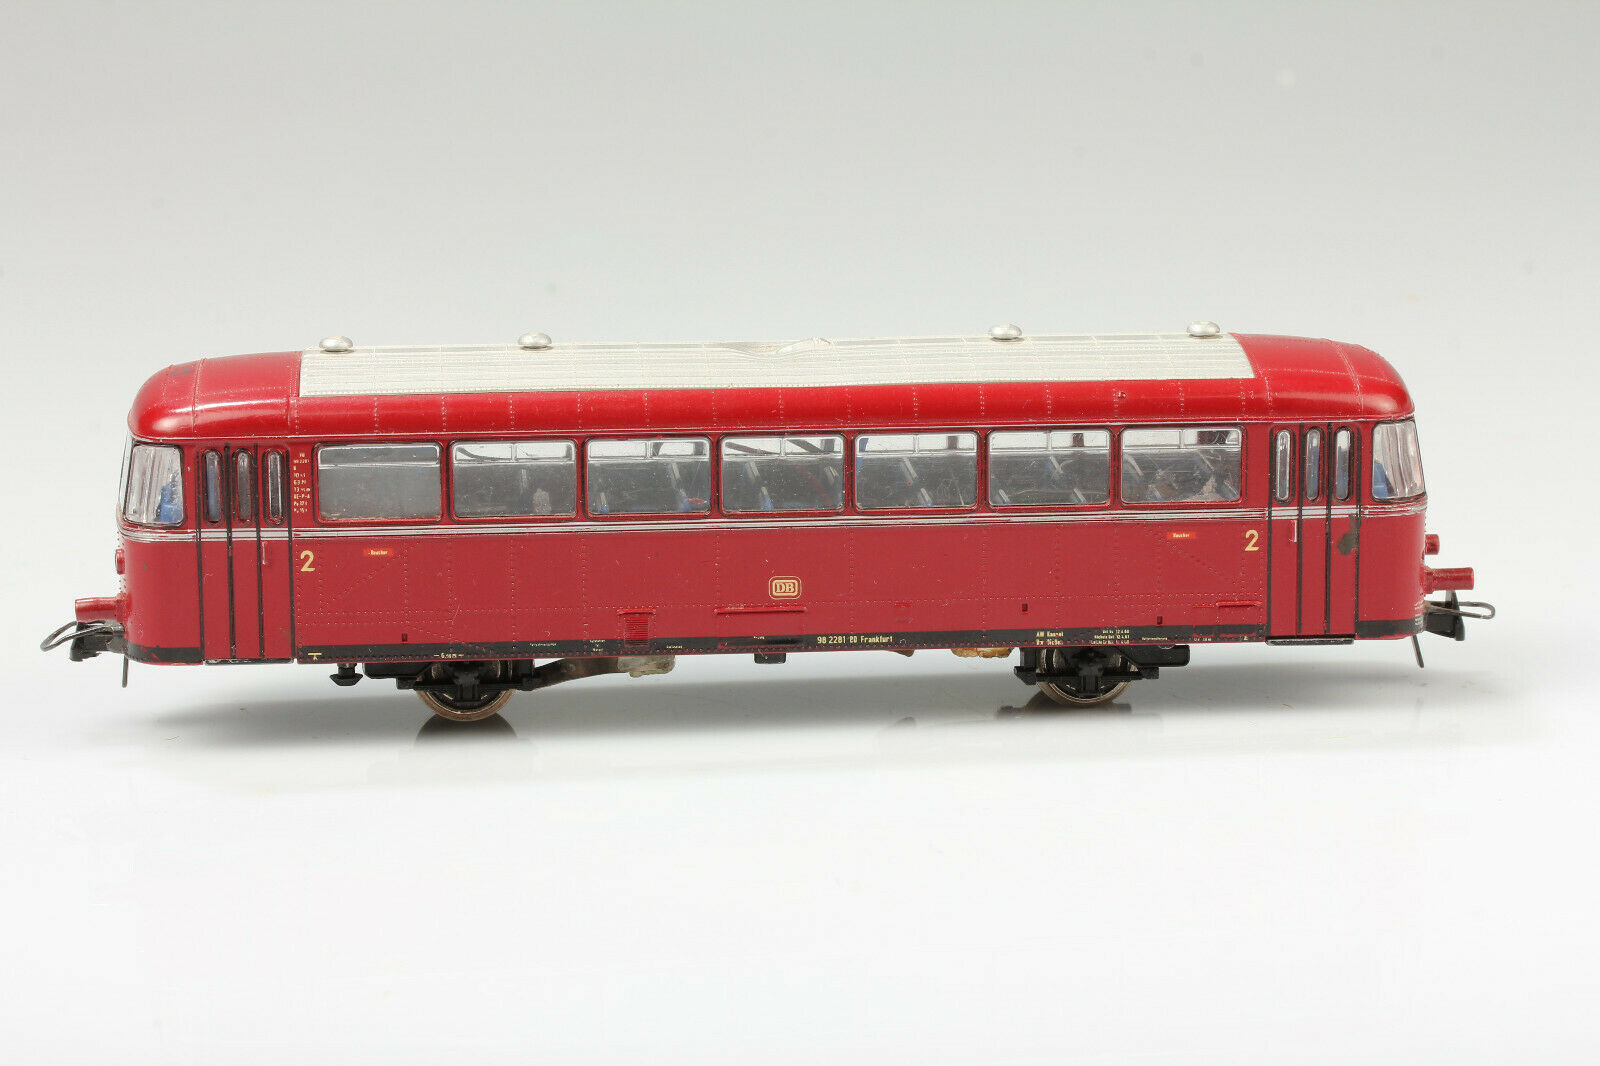 H0 Roco Ultra-Gredtiger Rail Bus Side Car vs 98 228 Lumber Craft Defects